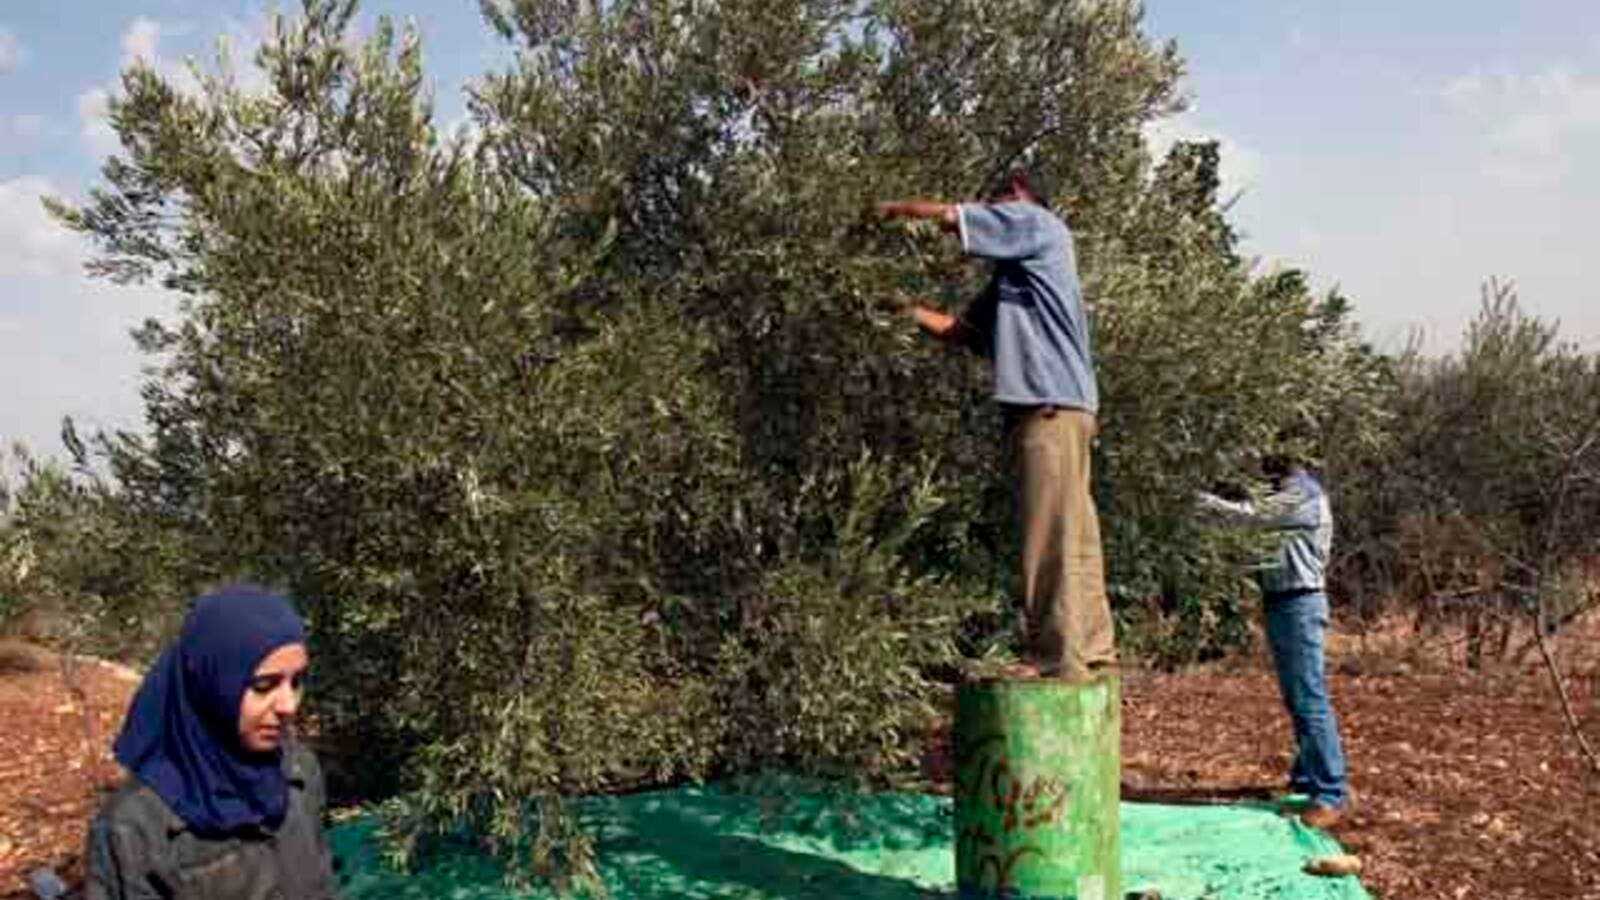 Jordan's olive producers call for ban on exports and imports